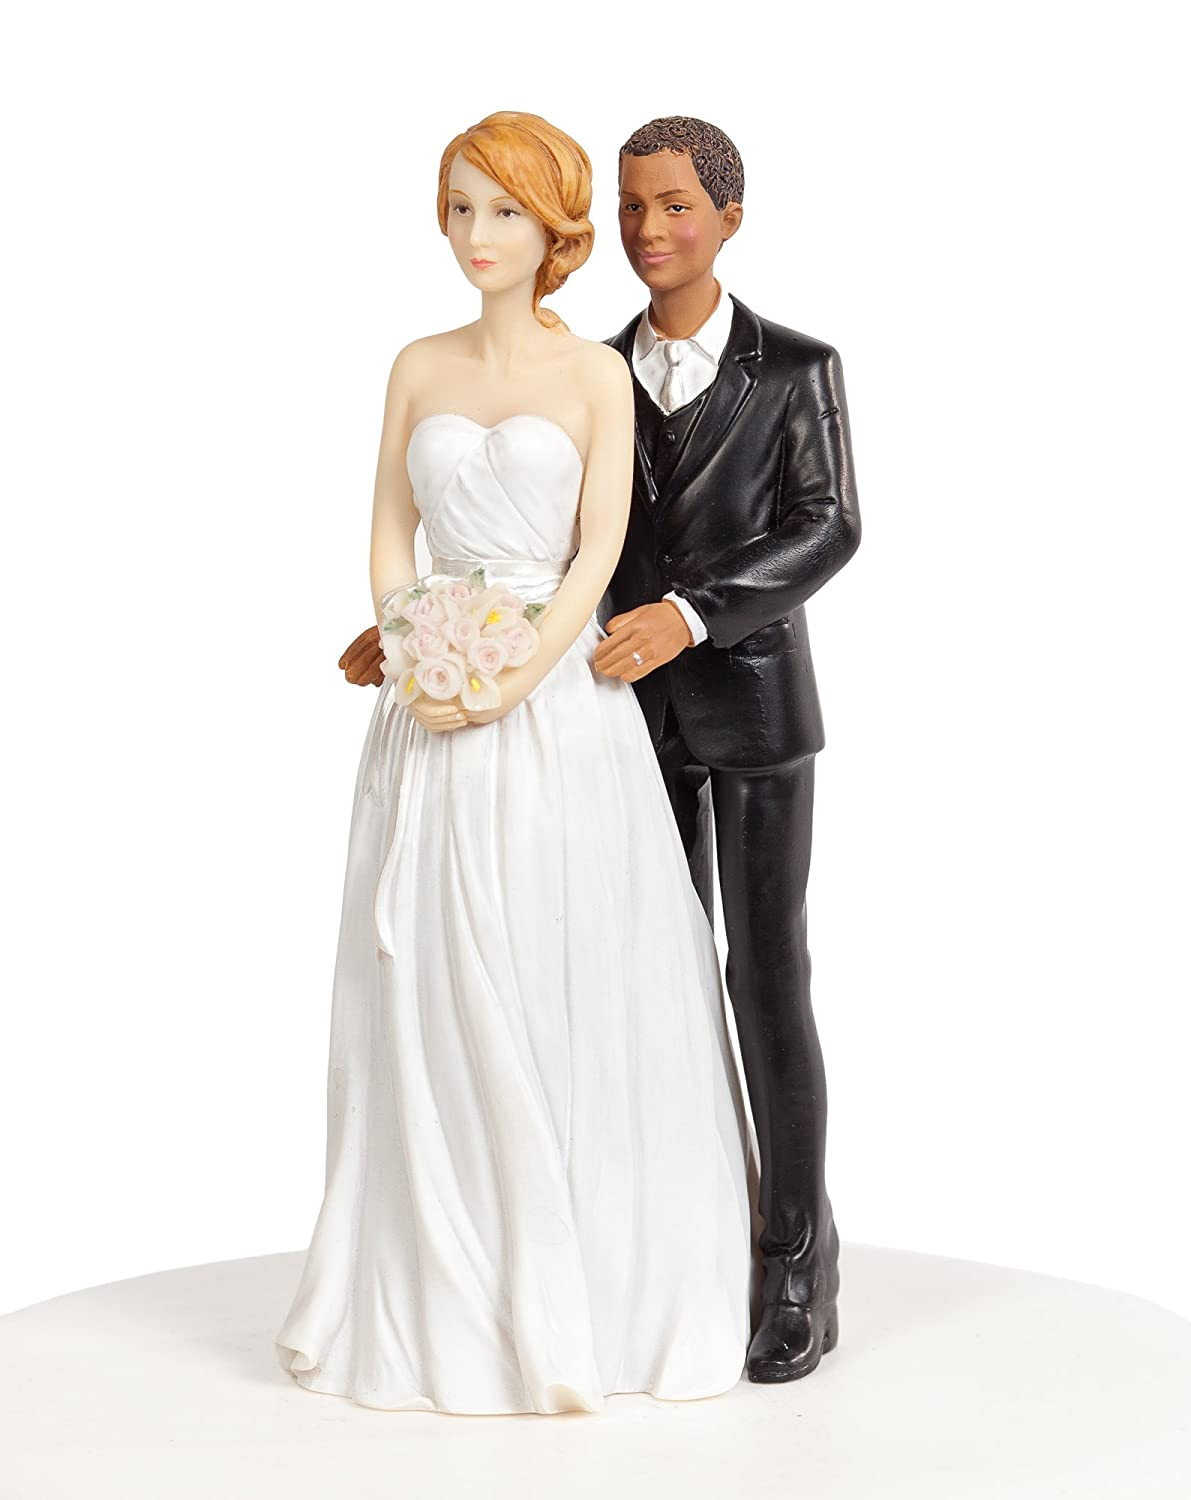 Amazon.com: Chic Interracial Wedding Cake Topper - Caucasian Bride ...